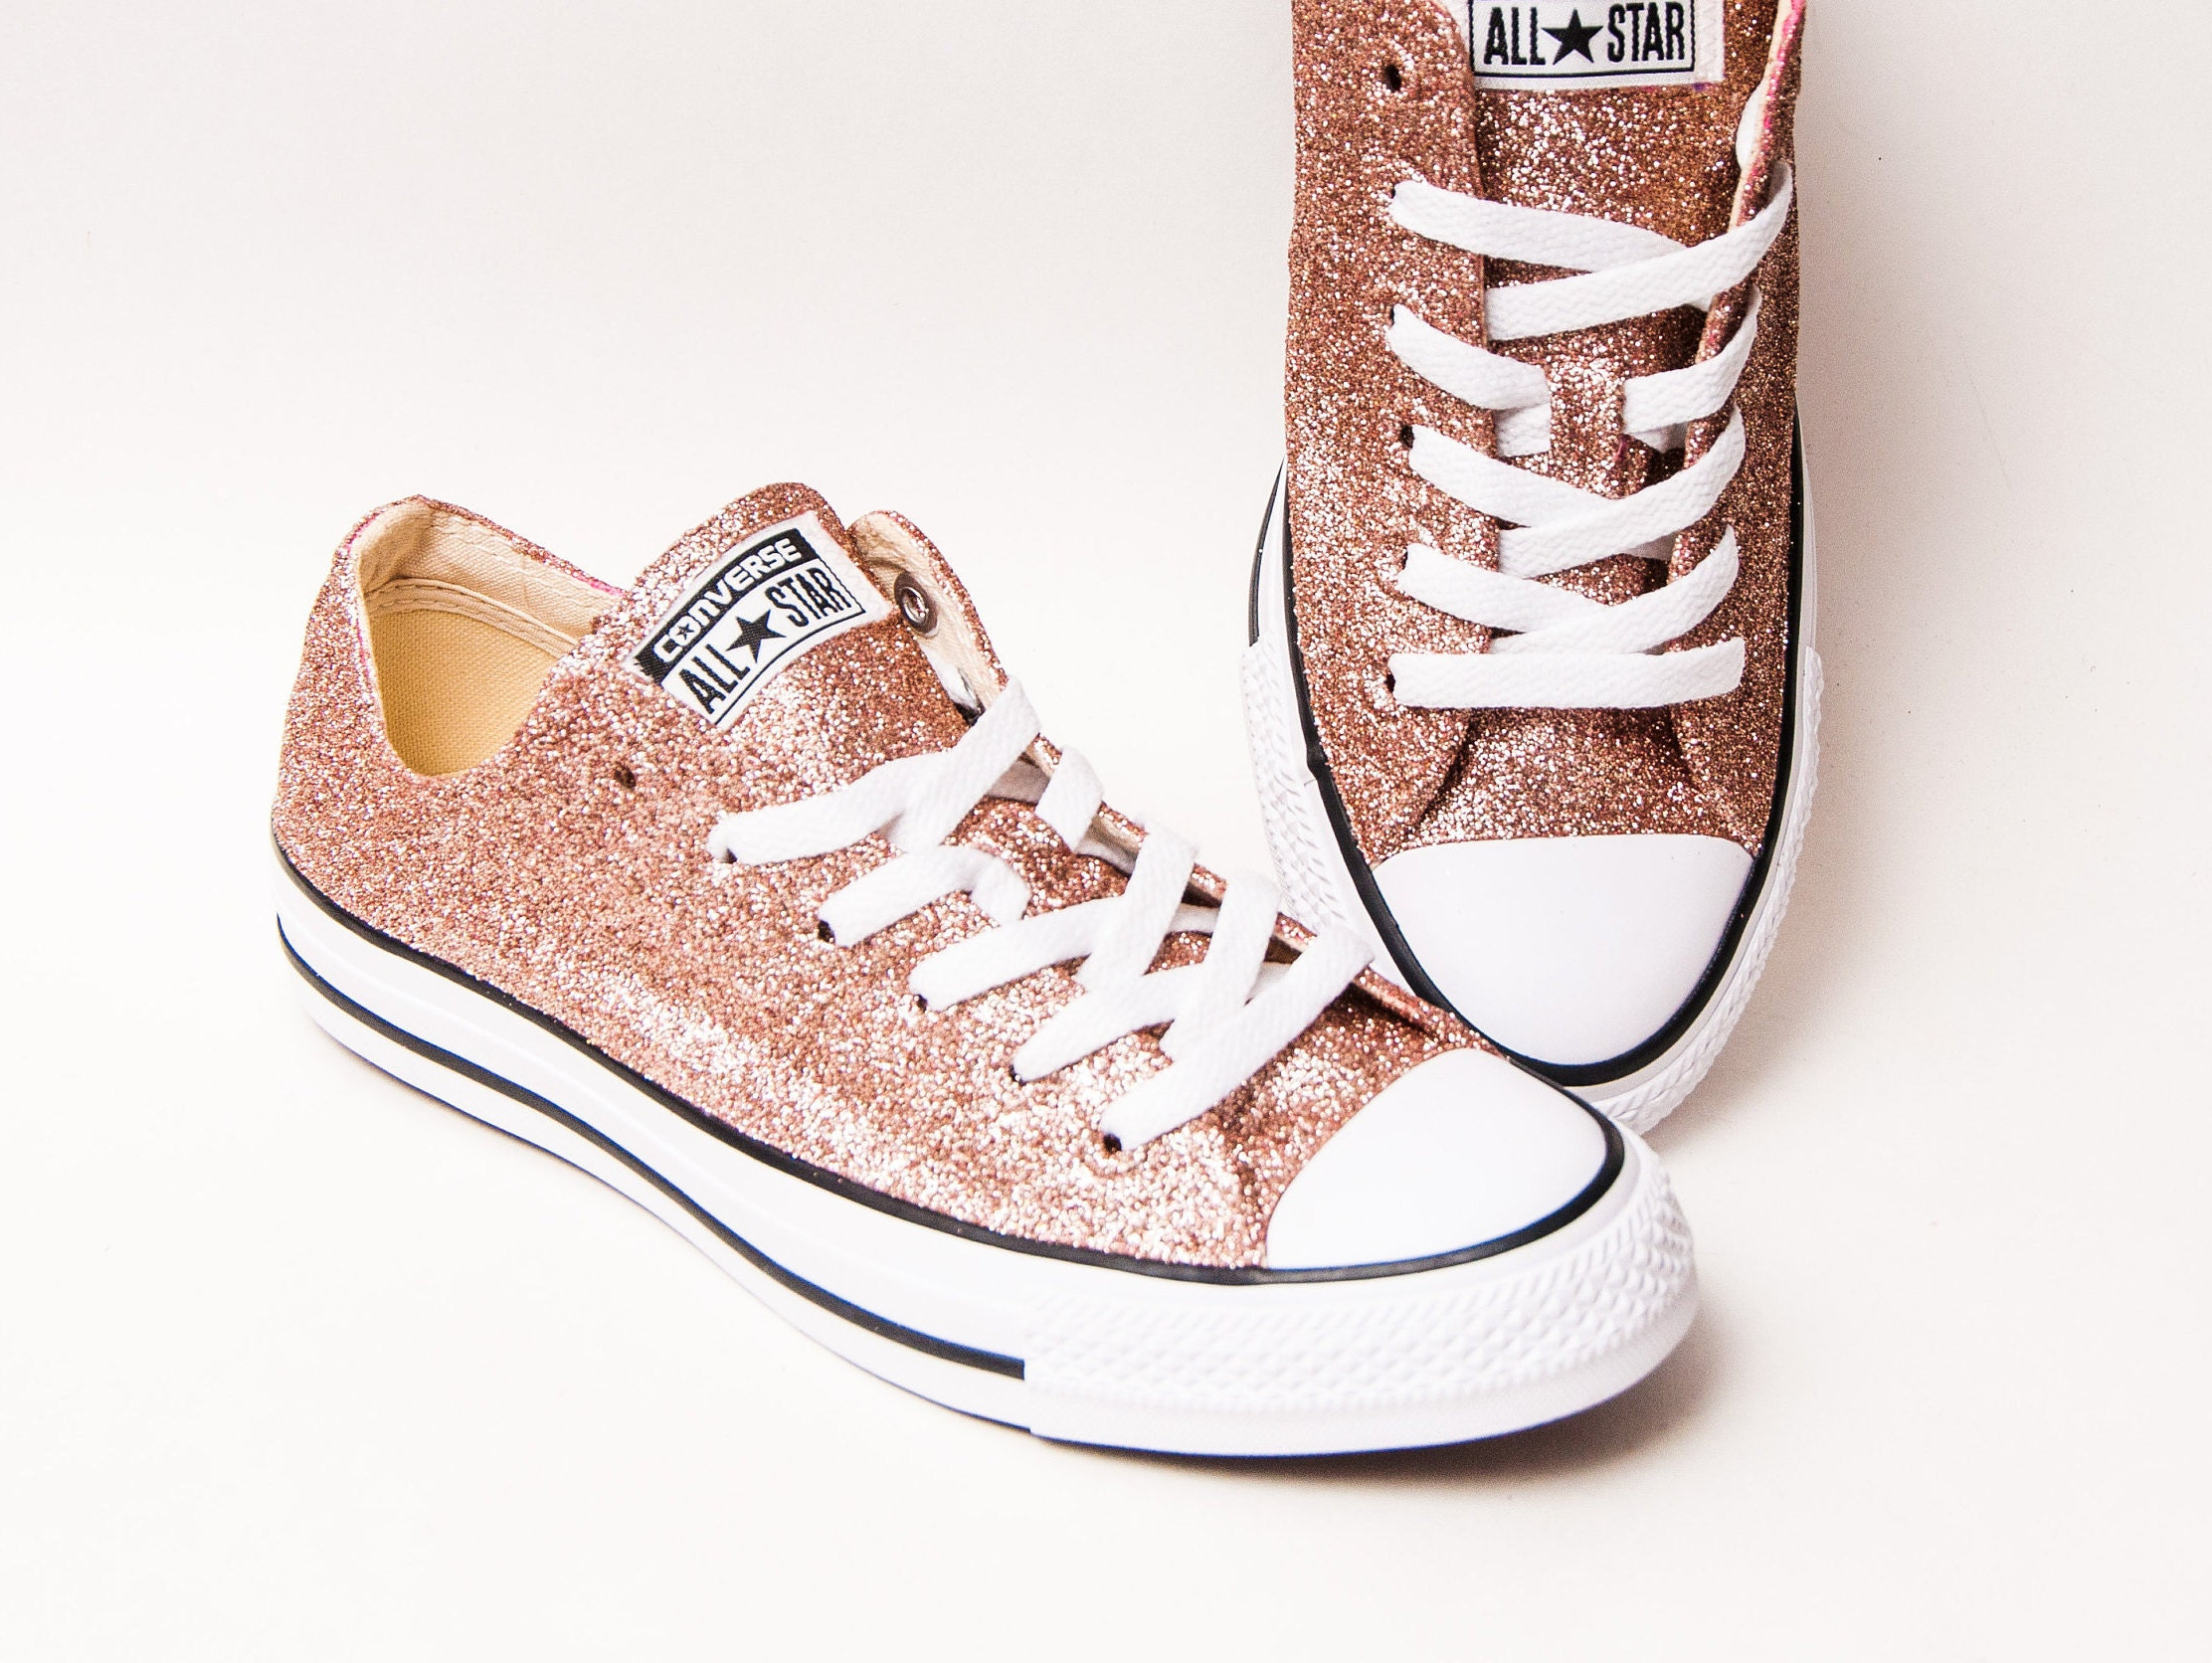 89961facd2dc Rose Gold Glitter Converse® All Star Low Top Sneakers | Etsy